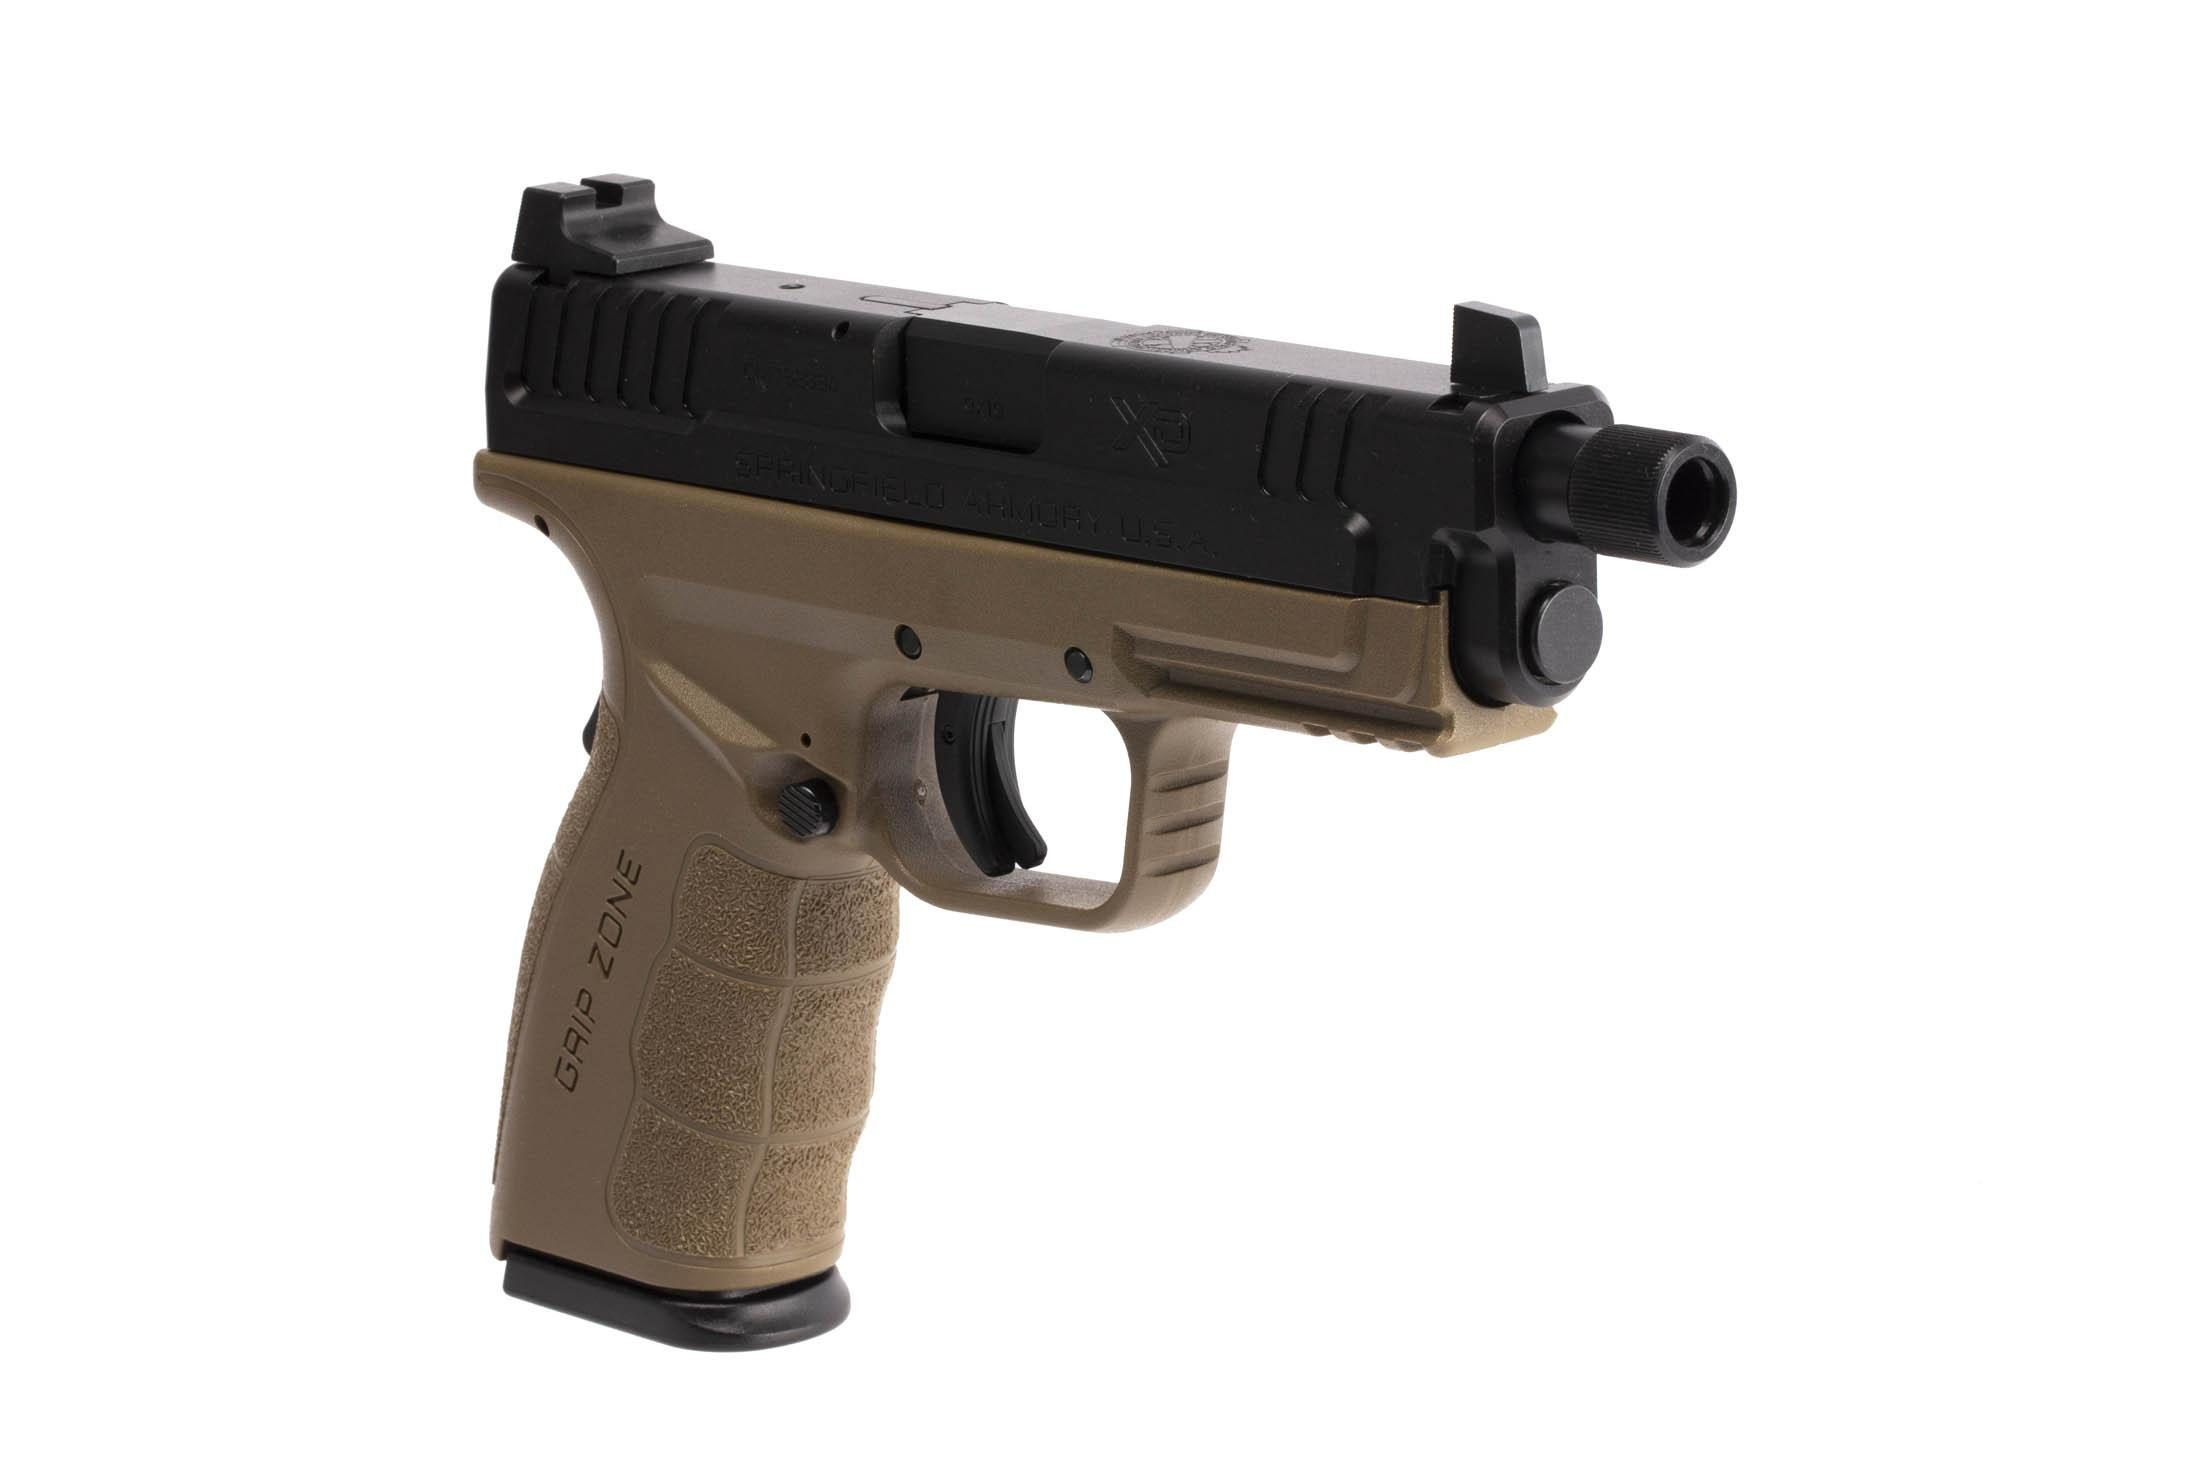 The Springfield Armory XD MOD.2 is a 9mm Full Size 16 round Handgun with a 4.8 inch Threaded Barrel for suppressors